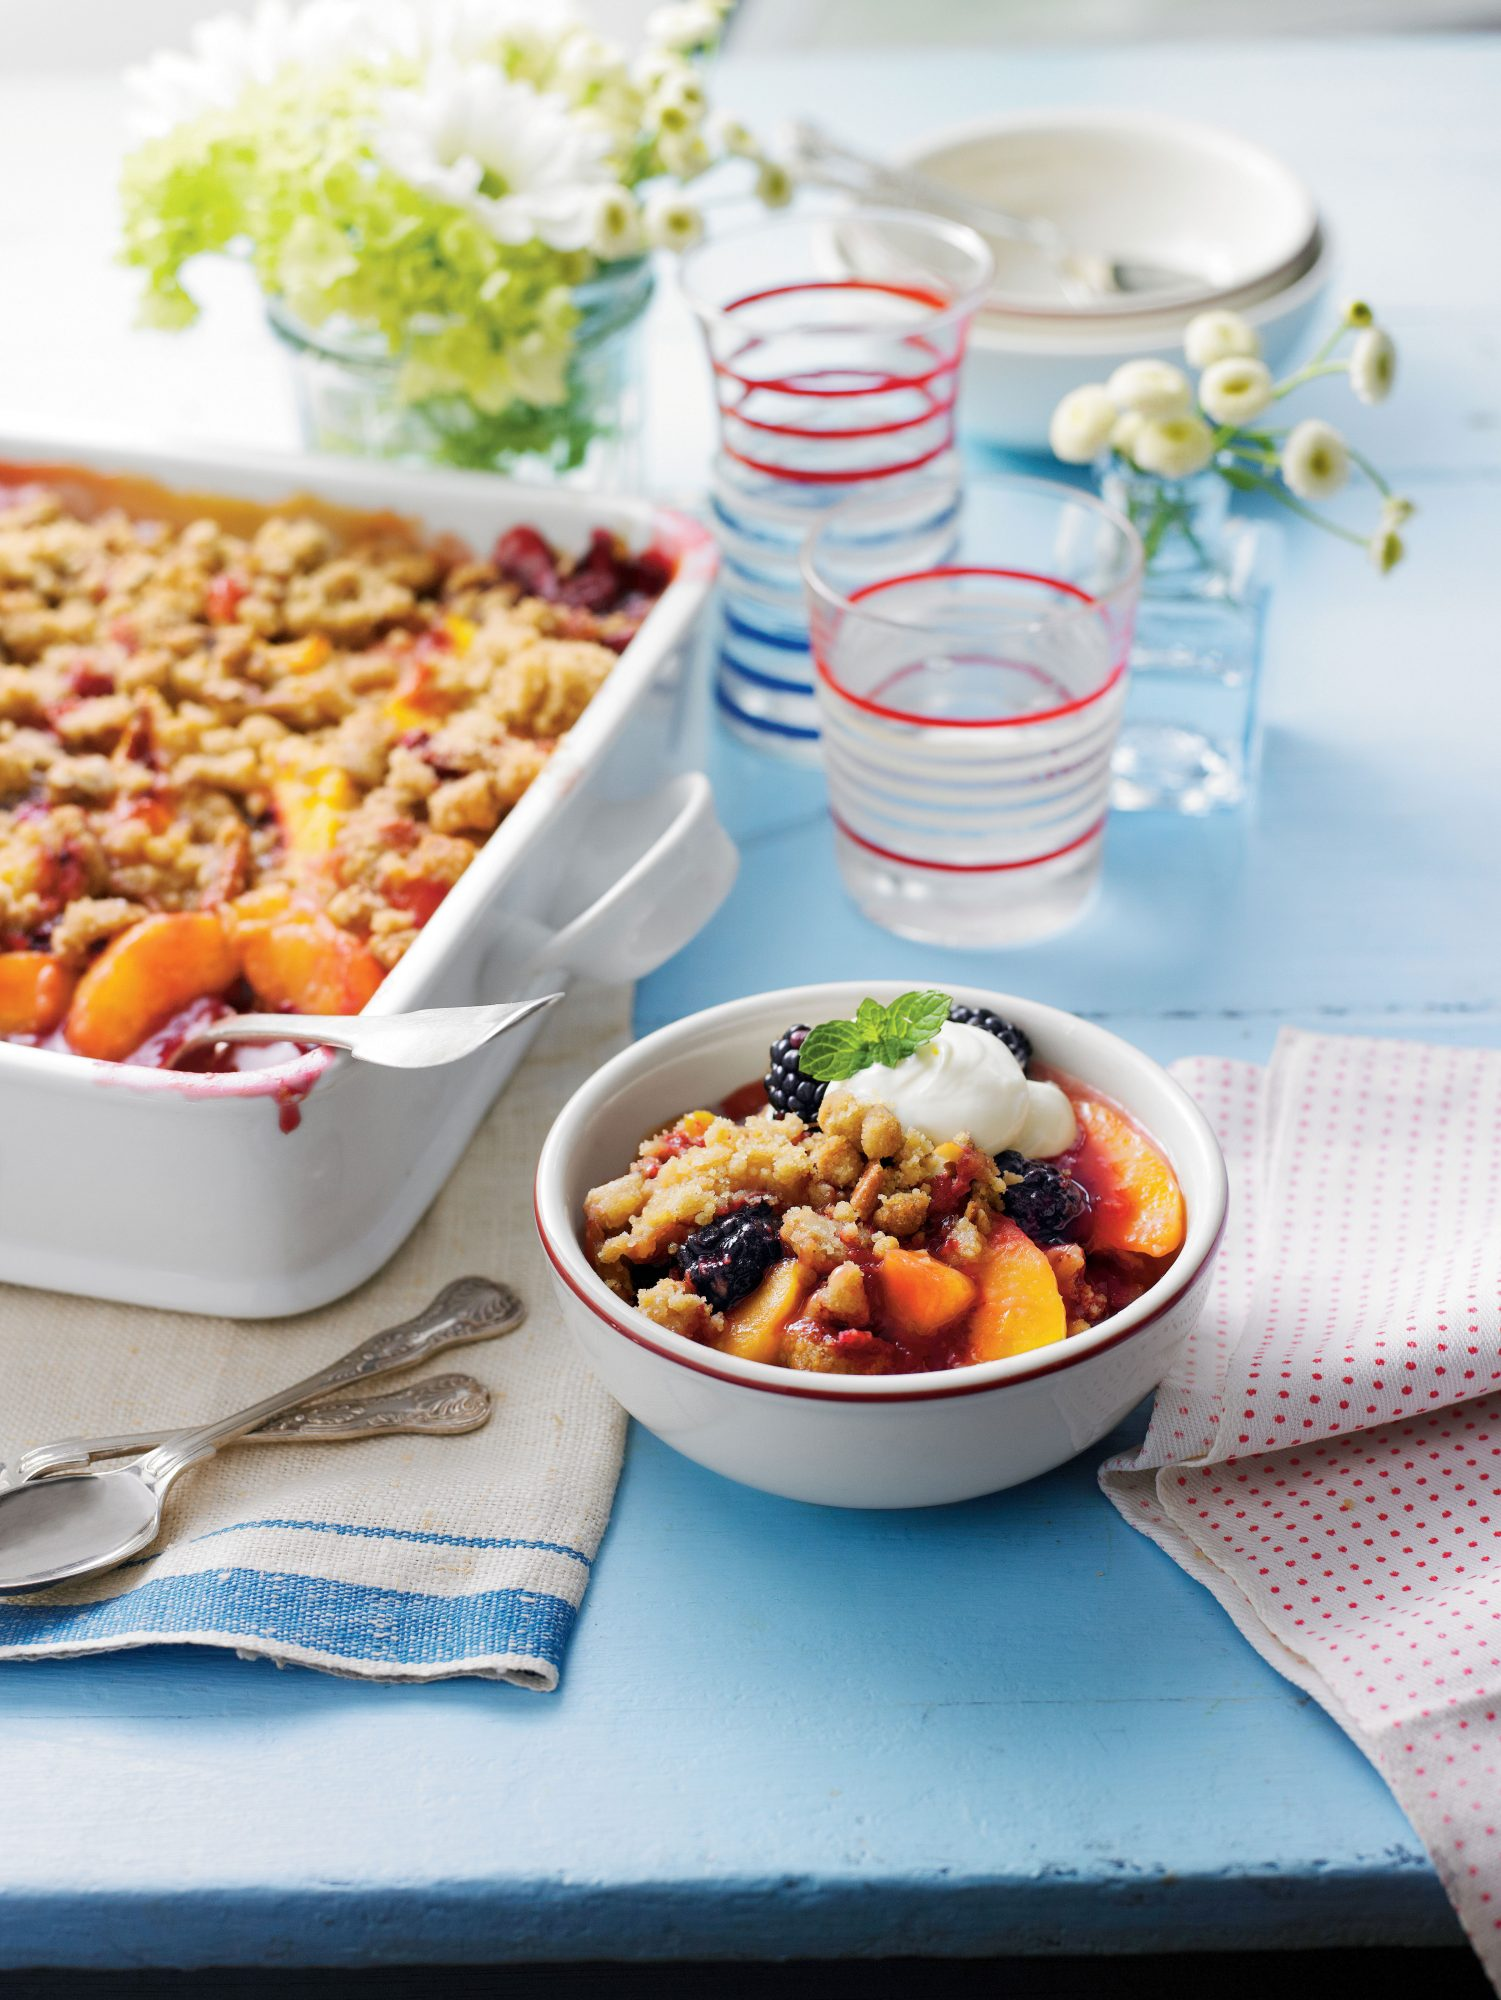 Blackberry-Peach Cobbler with Praline-Pecan Streusel Recipe